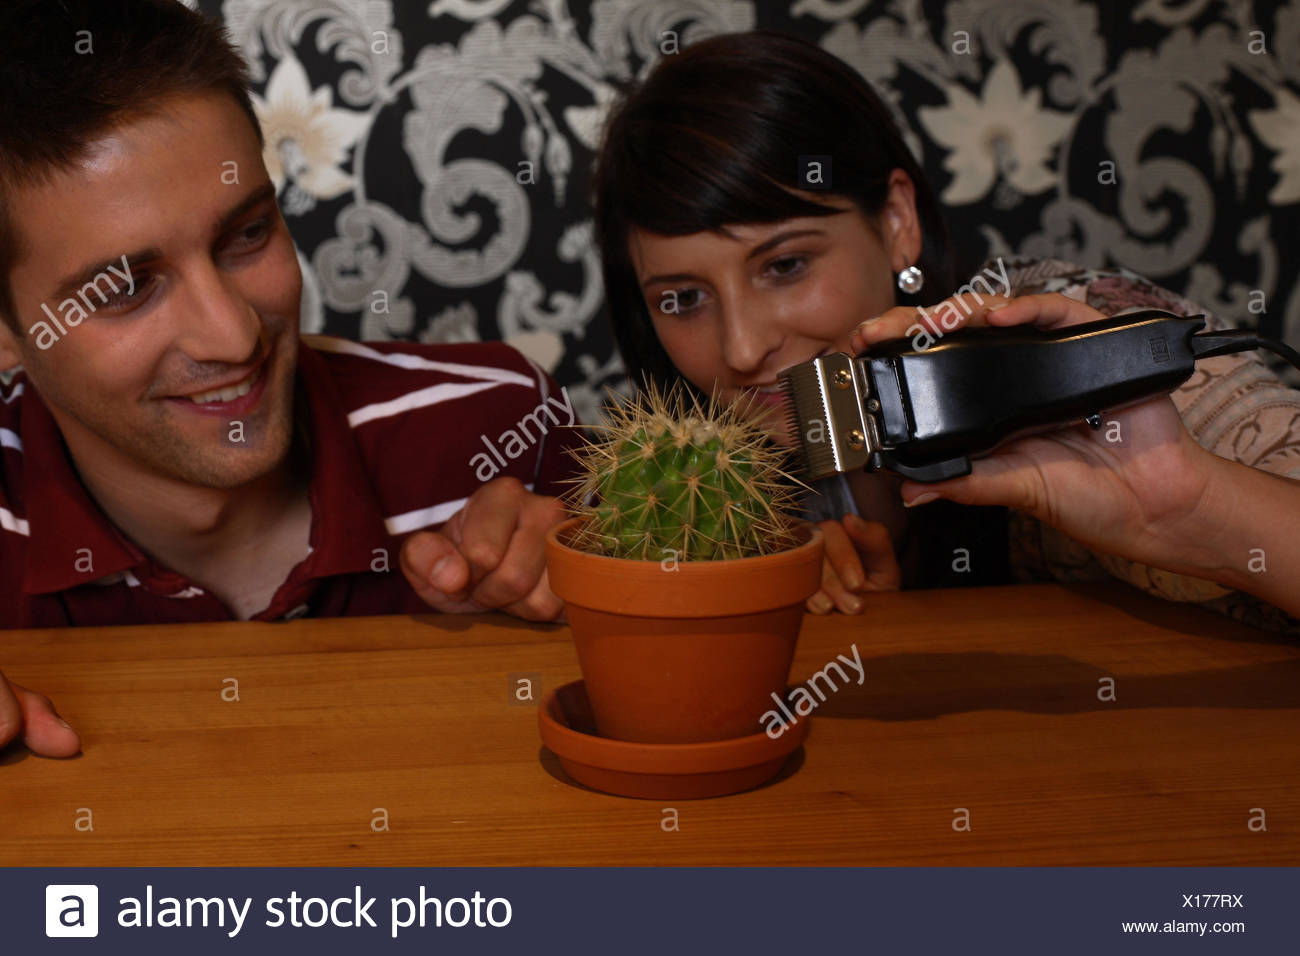 young couple fooling around shaving a cactus - Stock Image